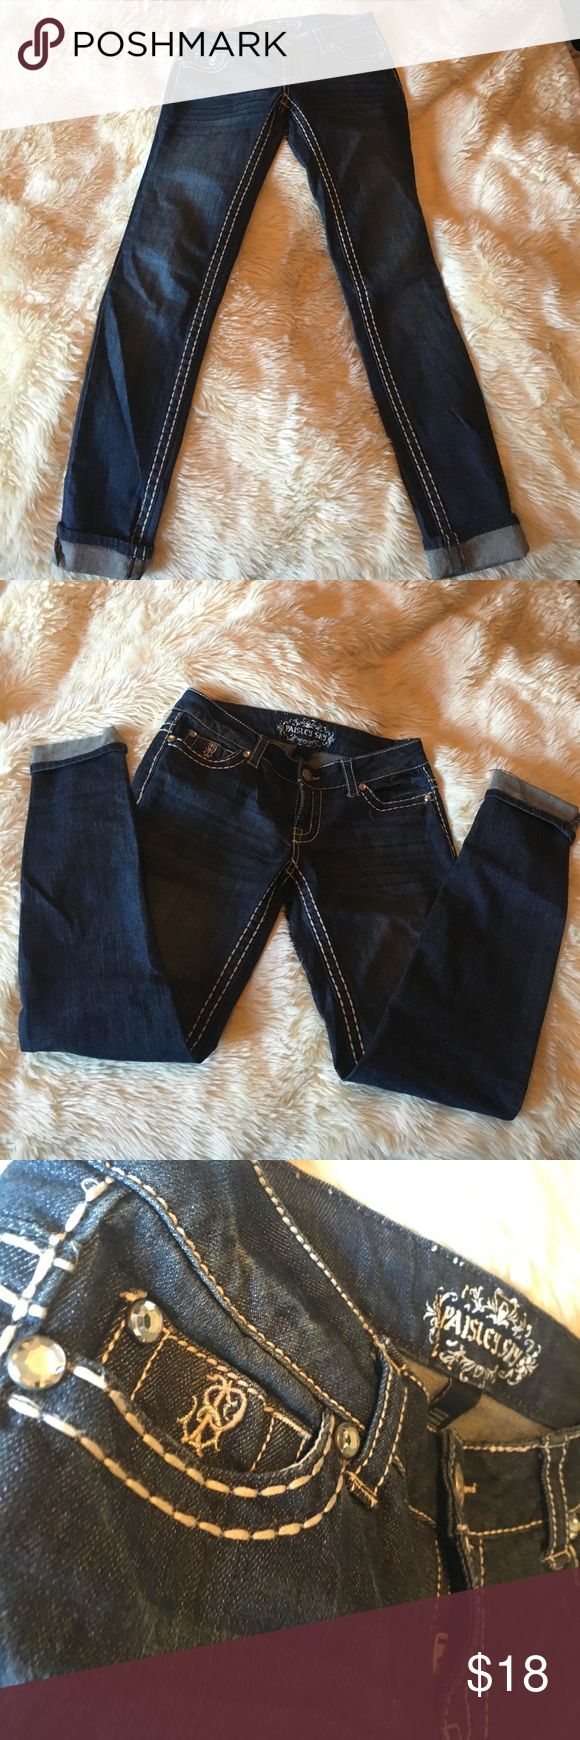 Stitch-Accent Jeans Straight legged Paisley Sky jeans with thick stitching and diamond accents. They pair perfectly with a sweater & booties :) 🍂.                                                        Bundle & make an offer to save :) paisley sky Jeans Straight Leg